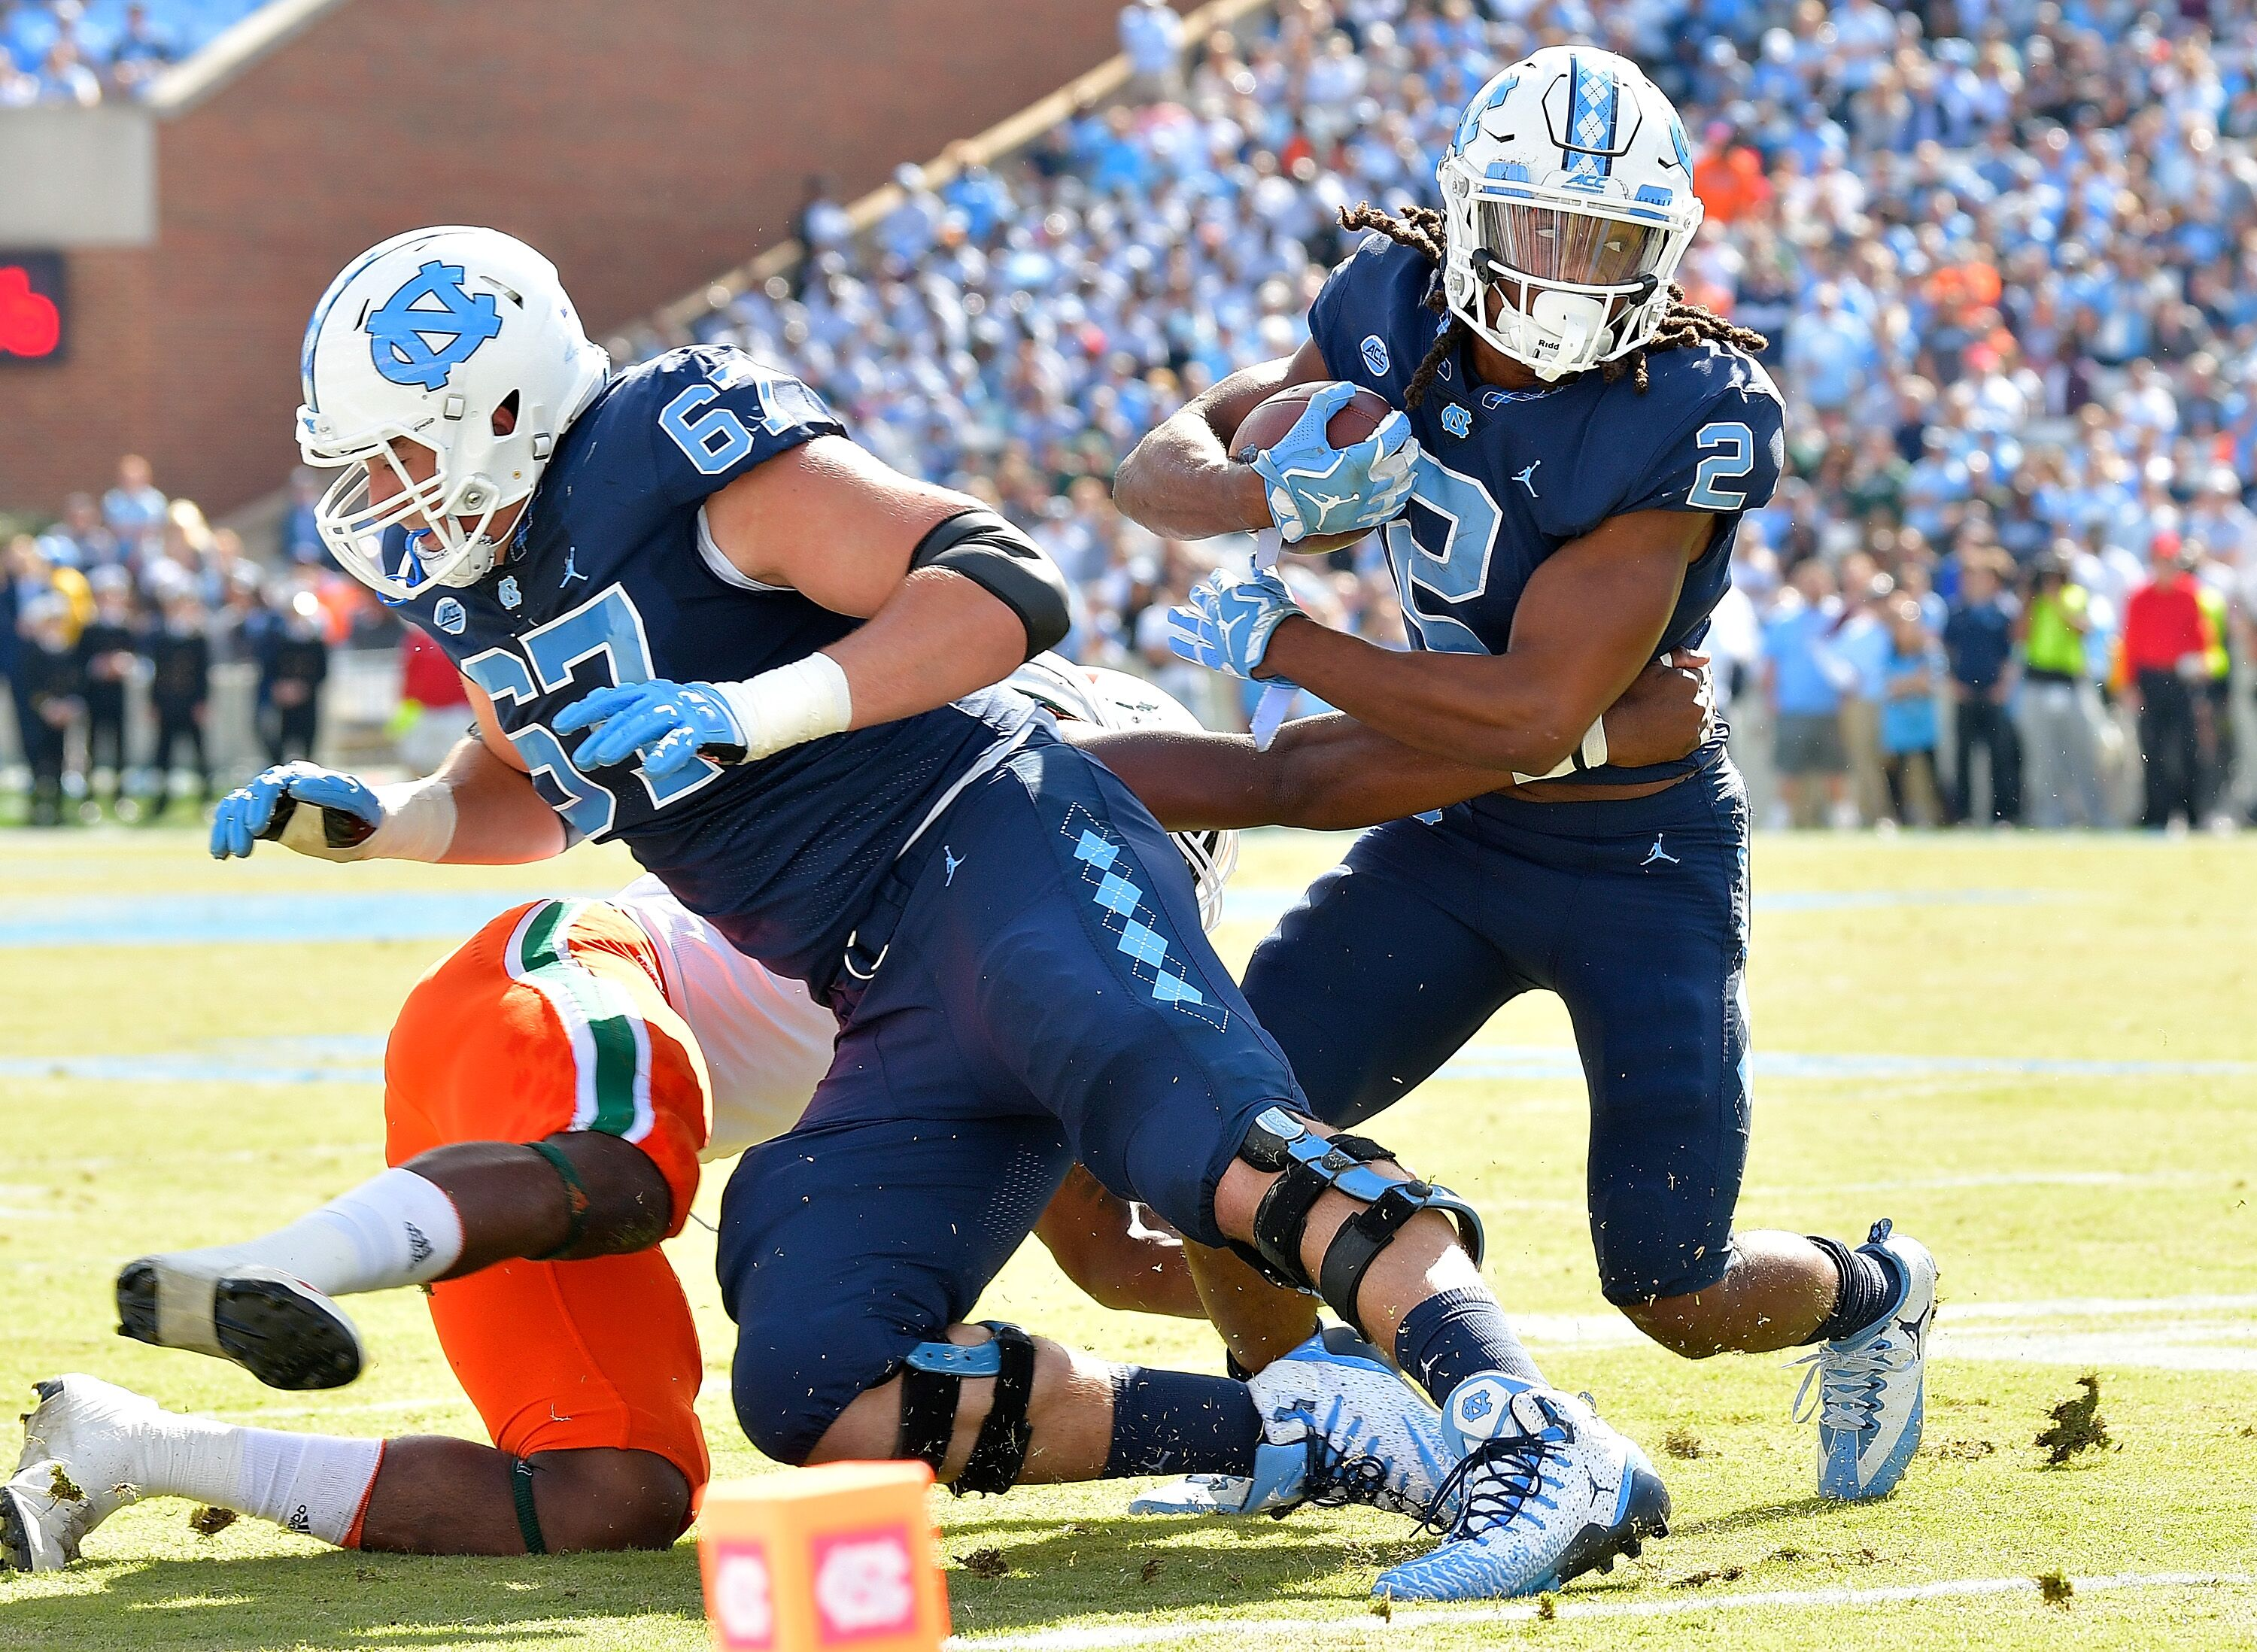 UNC Football Preview: Offensive line